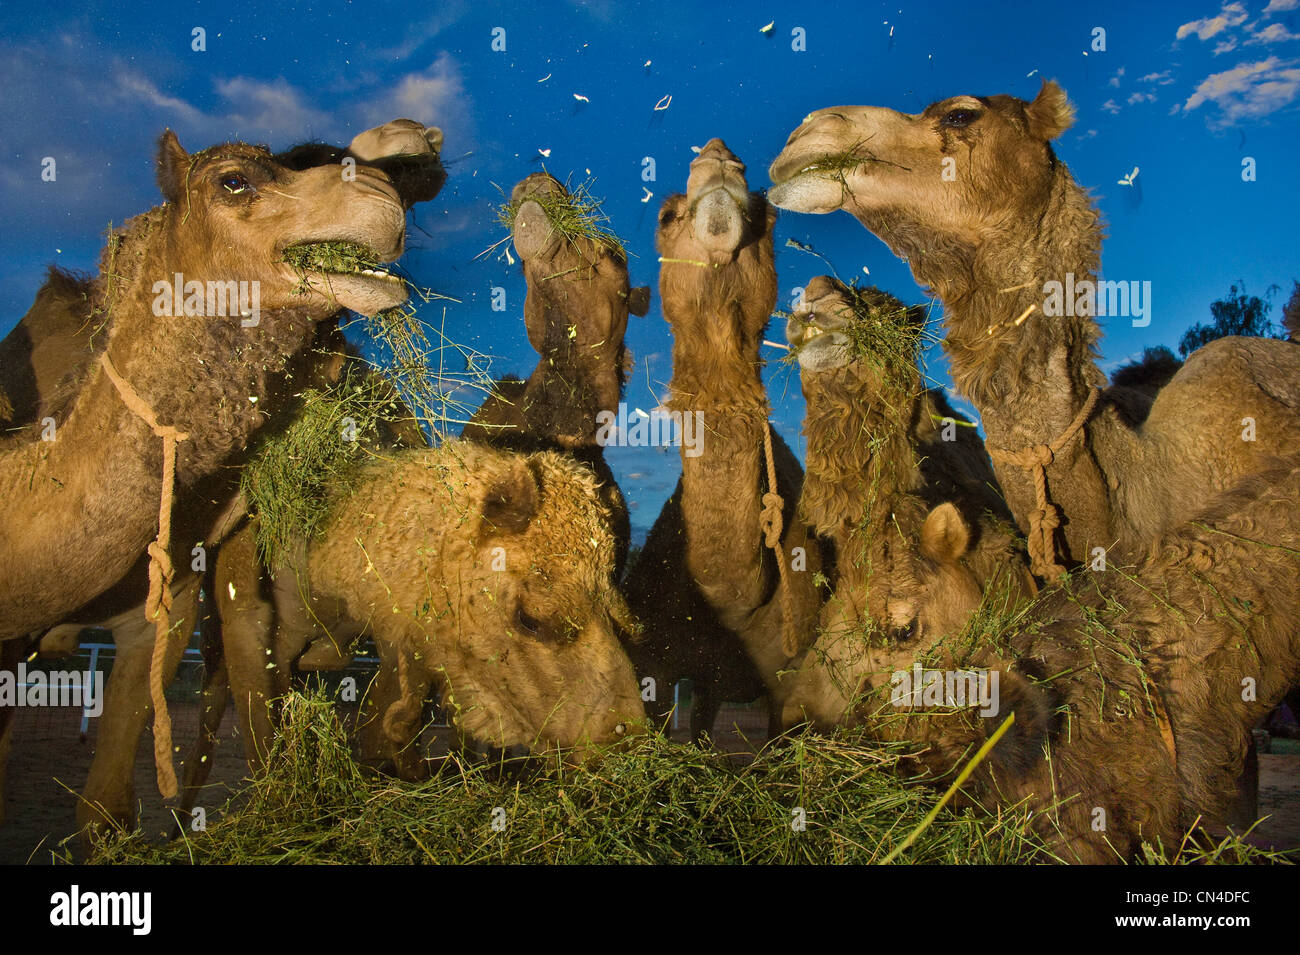 Australia, Northern Territory, Alice Springs, camel - Stock Image